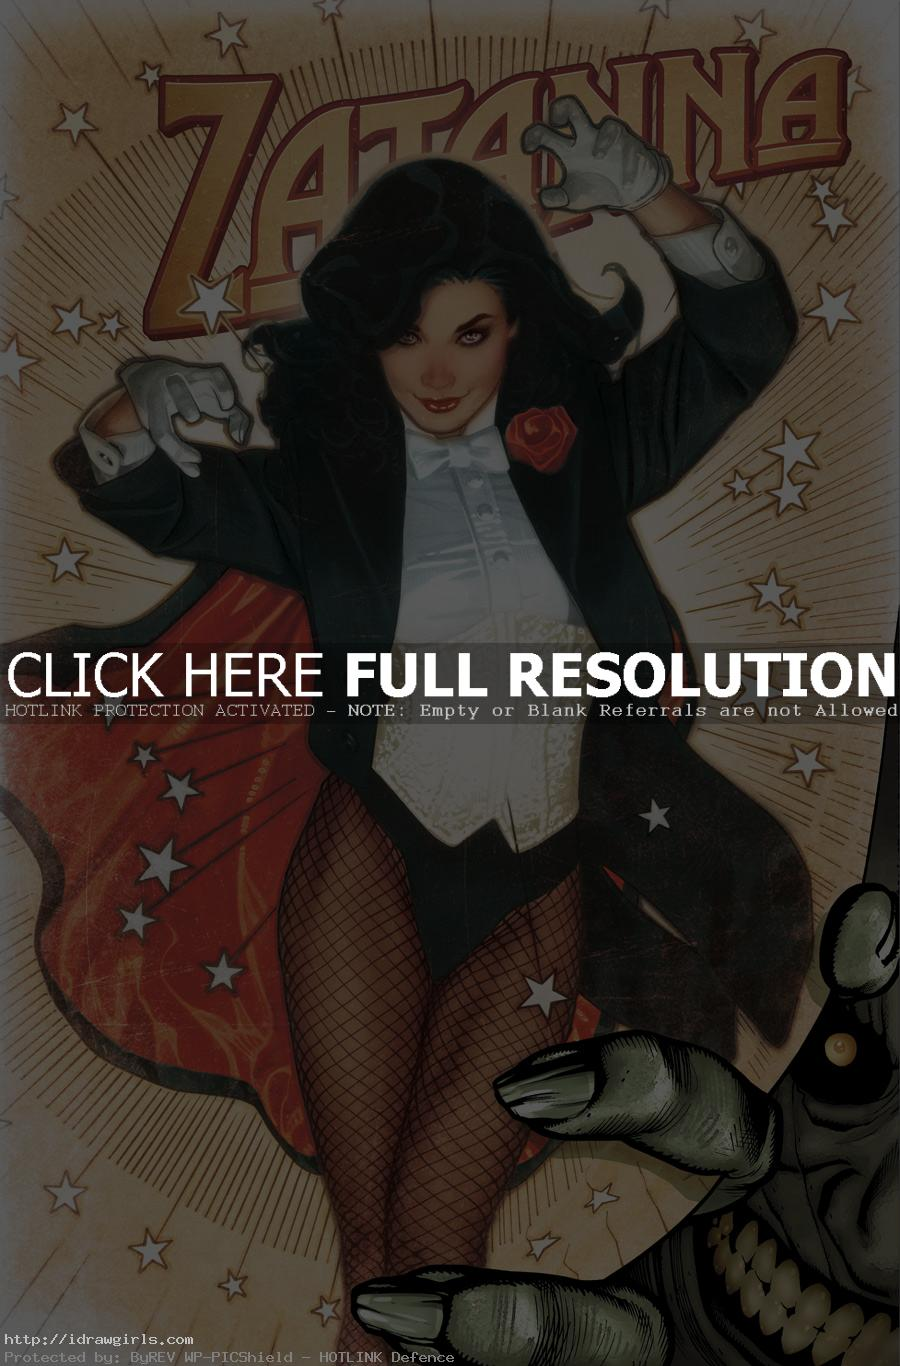 zatanna adam hughes Top 5 amazing Zatanna artwork